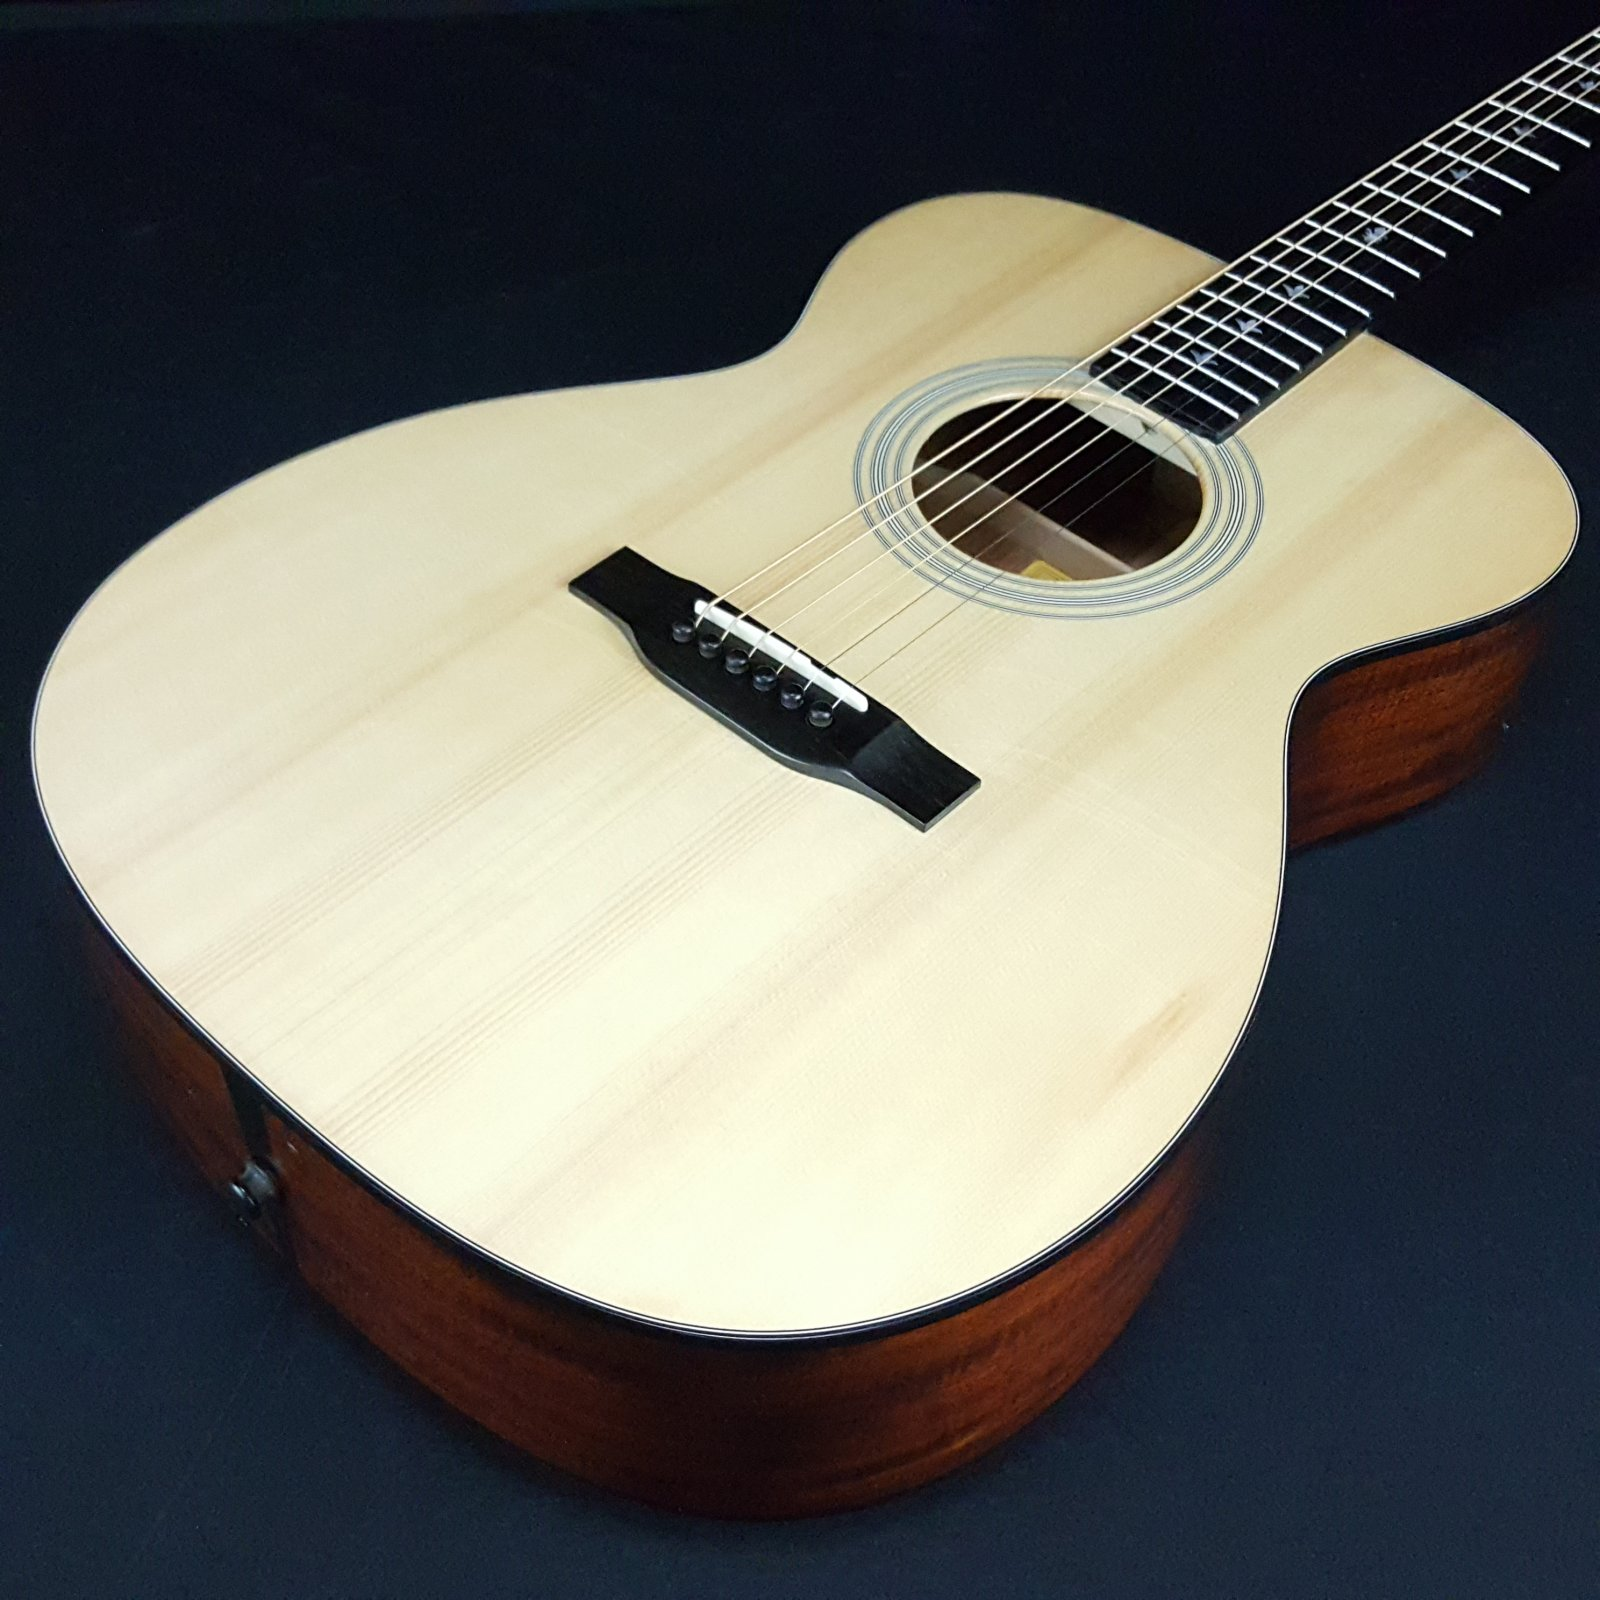 Used Eastman E10OM-LTD Limited Edition Acoustic Guitar With Case